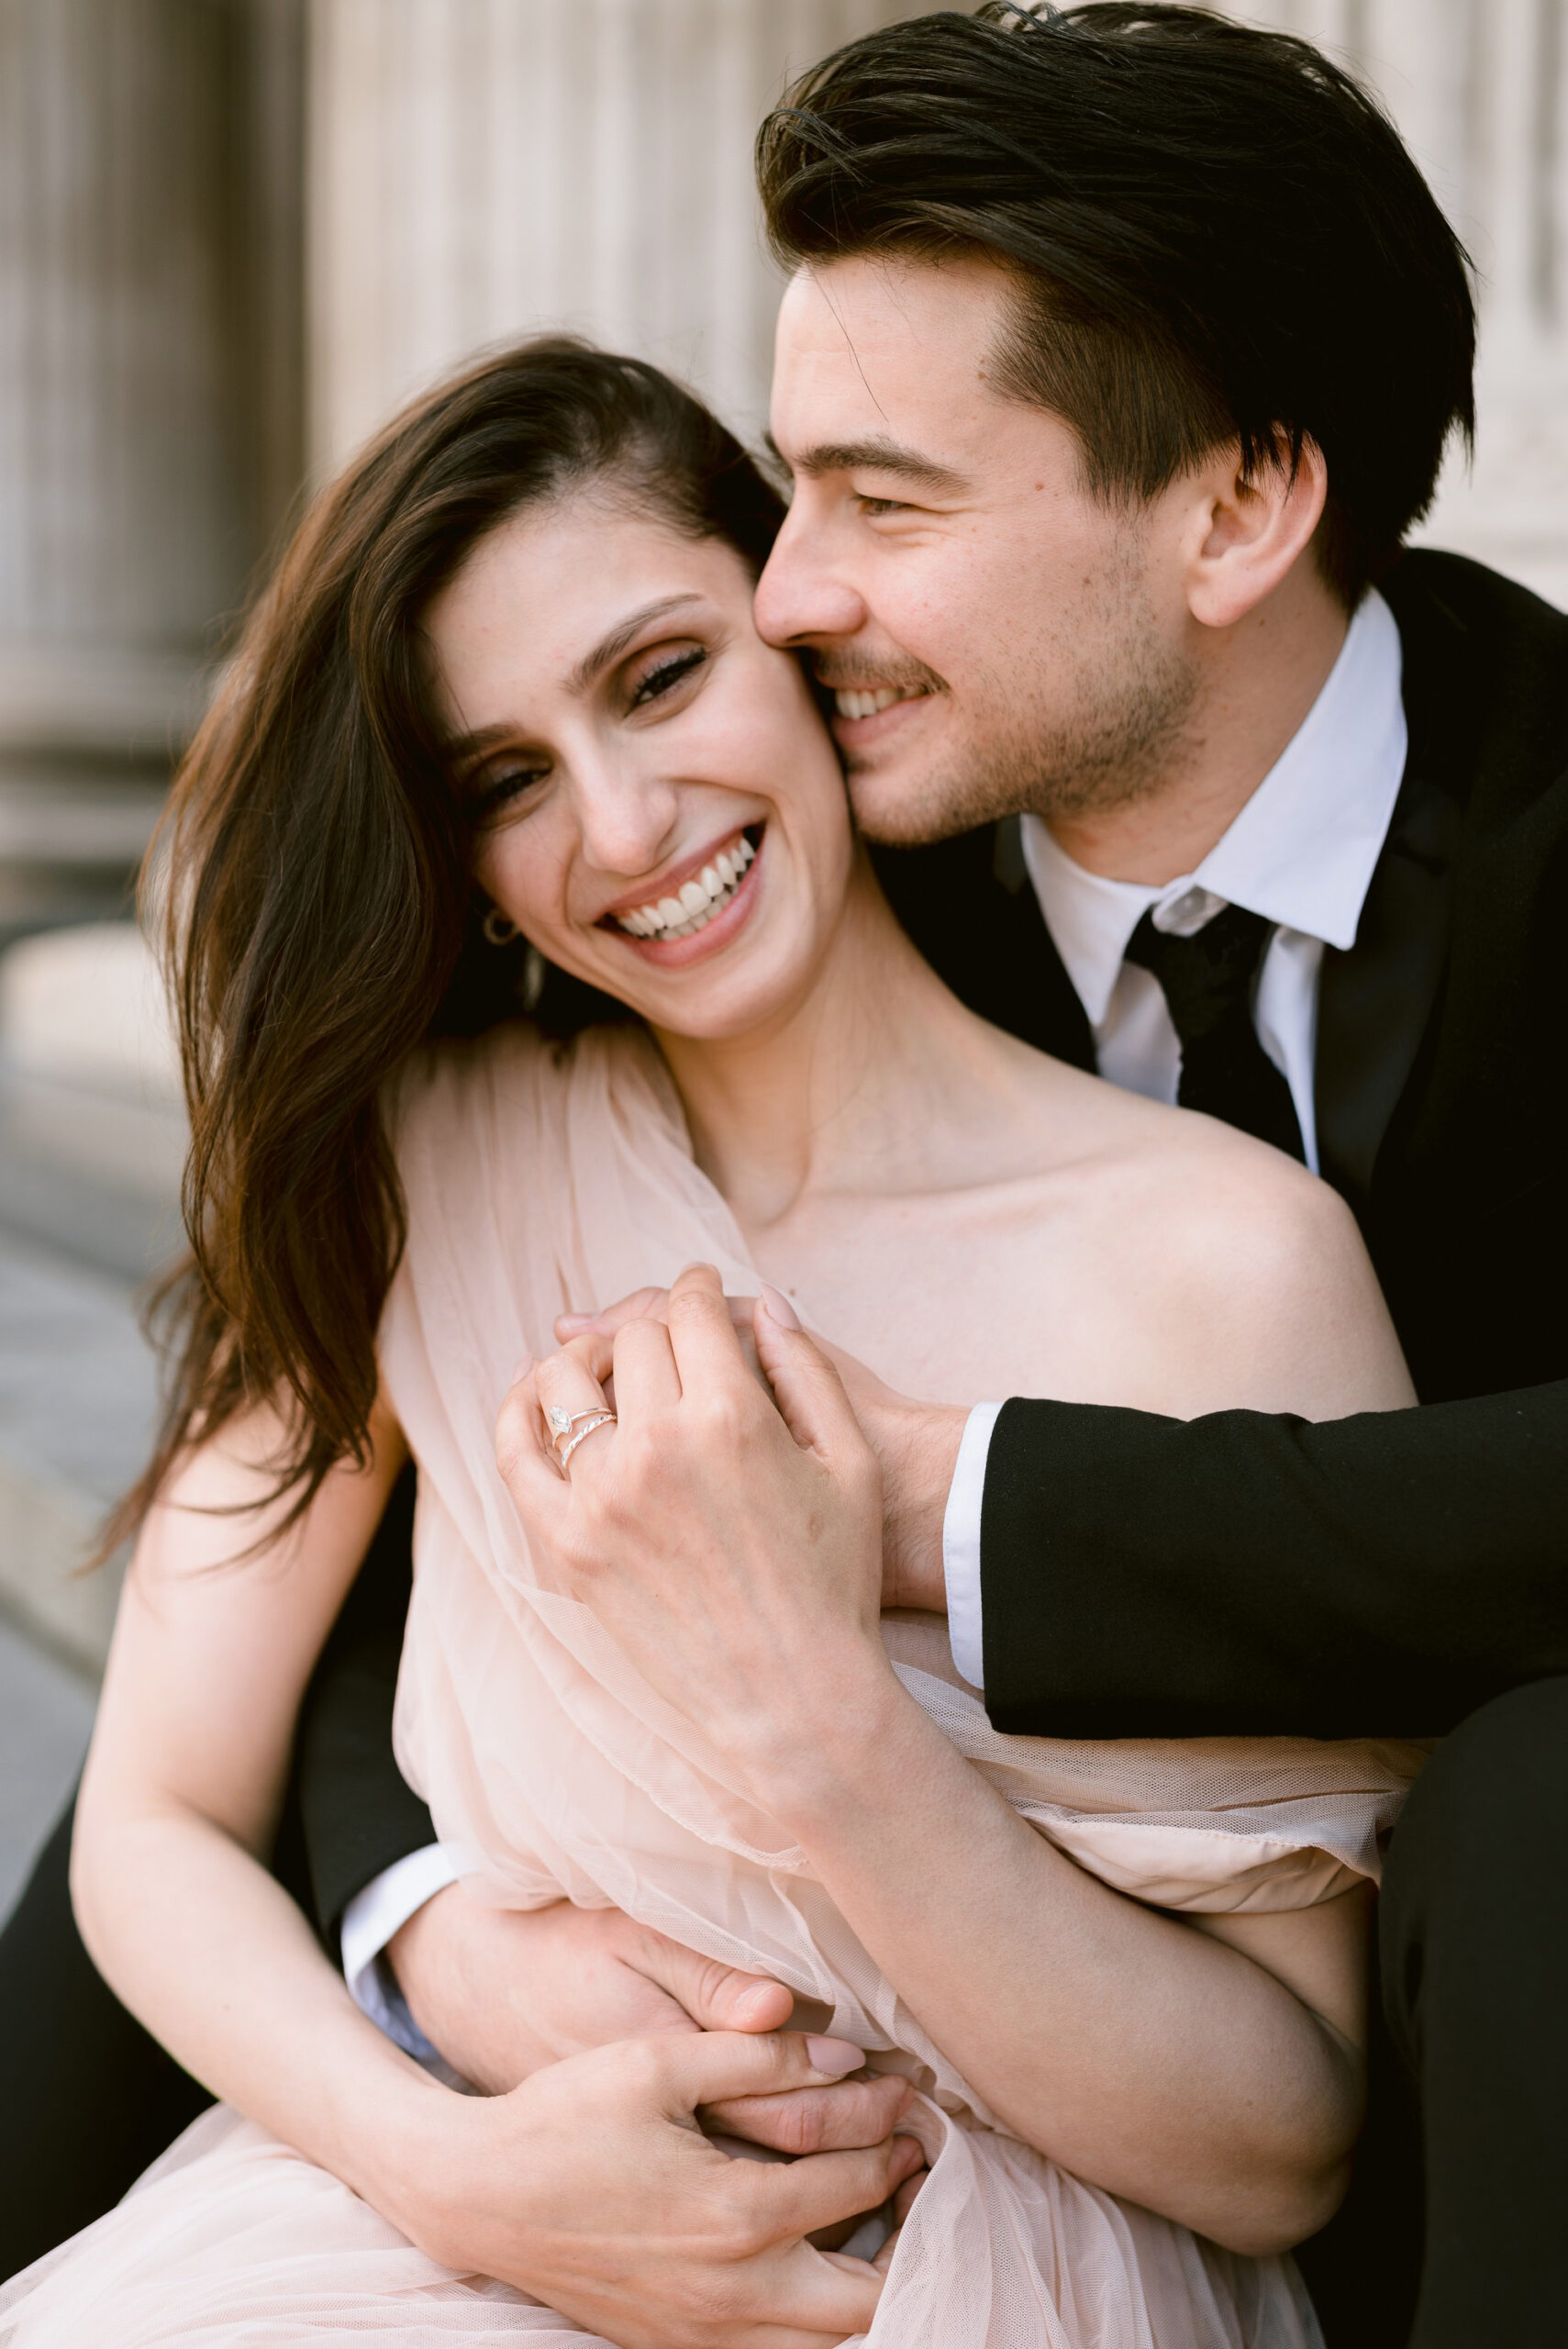 Katia and John photographed by St Paul's Cathedral in London. She wears a pale coral longline off the shoulder dress. He's in black tie and suit. Captured by Eva Tarnok Photography